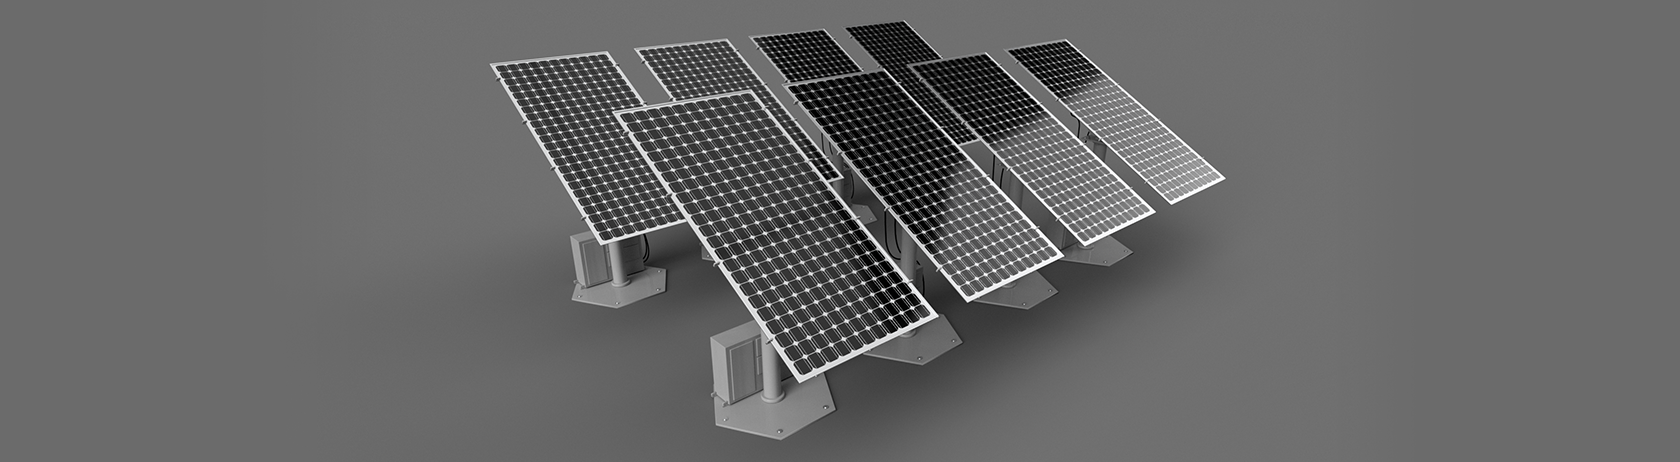 Solar PV System components: solar panels and fuse boxes